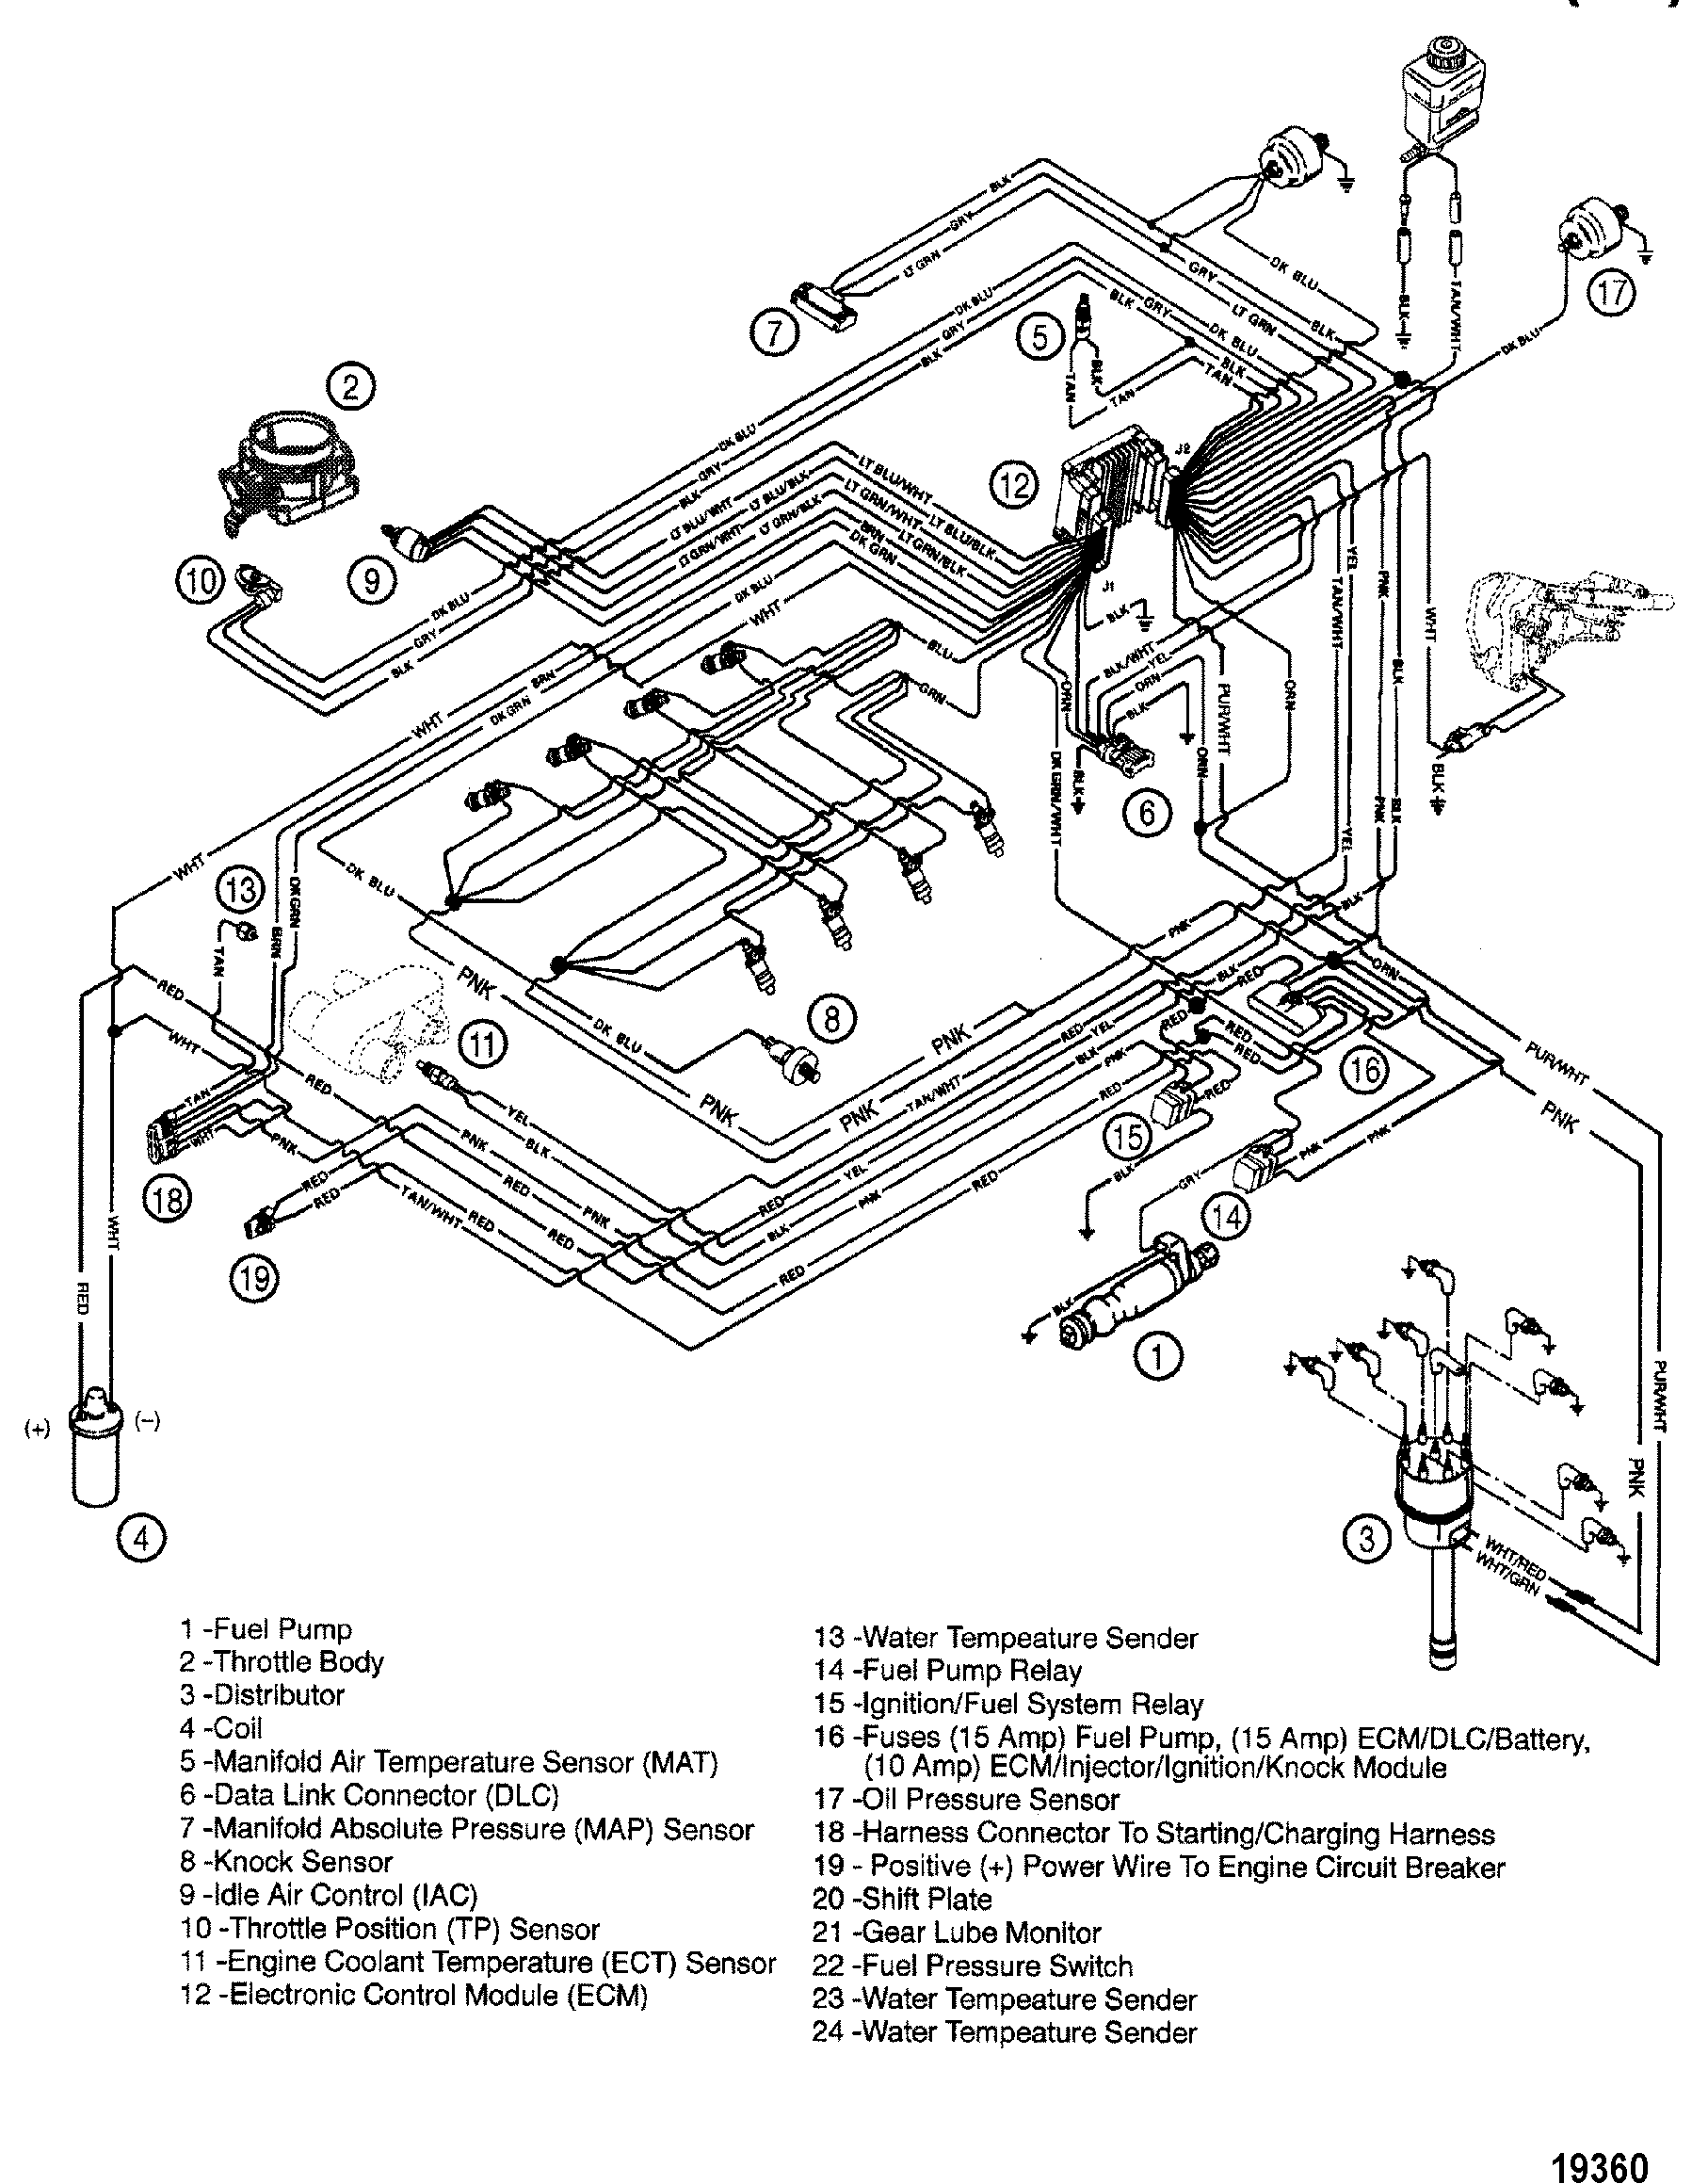 1989 mercury sable wiring diagram mercruiser 350 mag mpi engine diagram. engine. auto parts ... #8